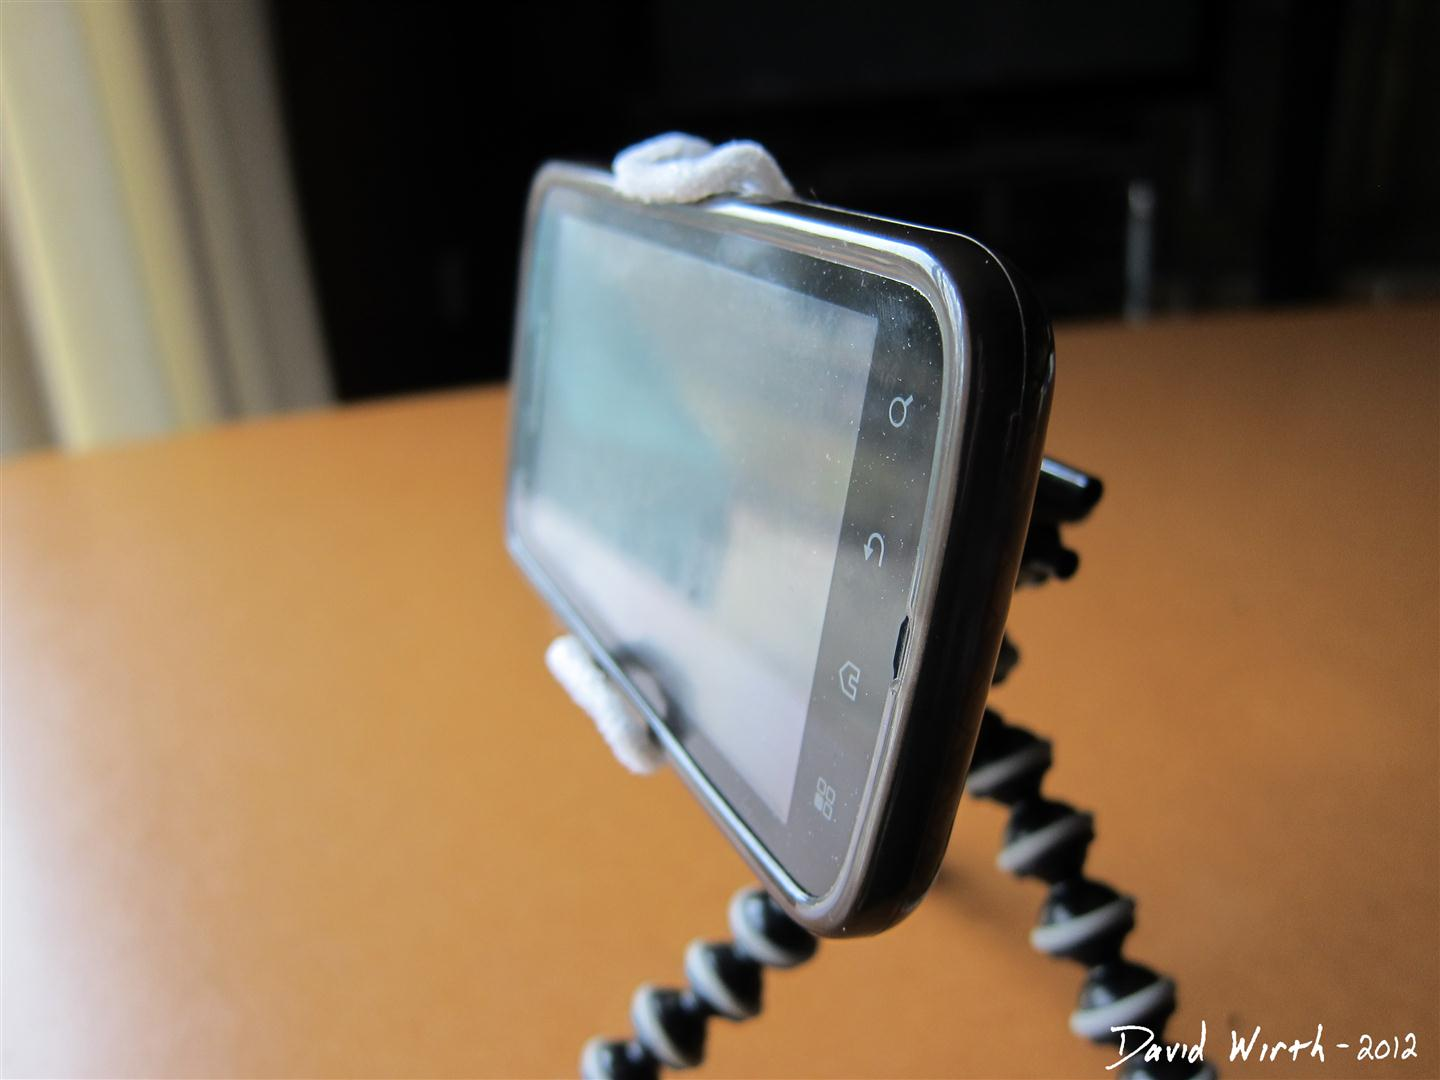 Diy Cell Phone Holder For Your Car Dui Attorney Wiring Boston Lawyers Make Binder Clip